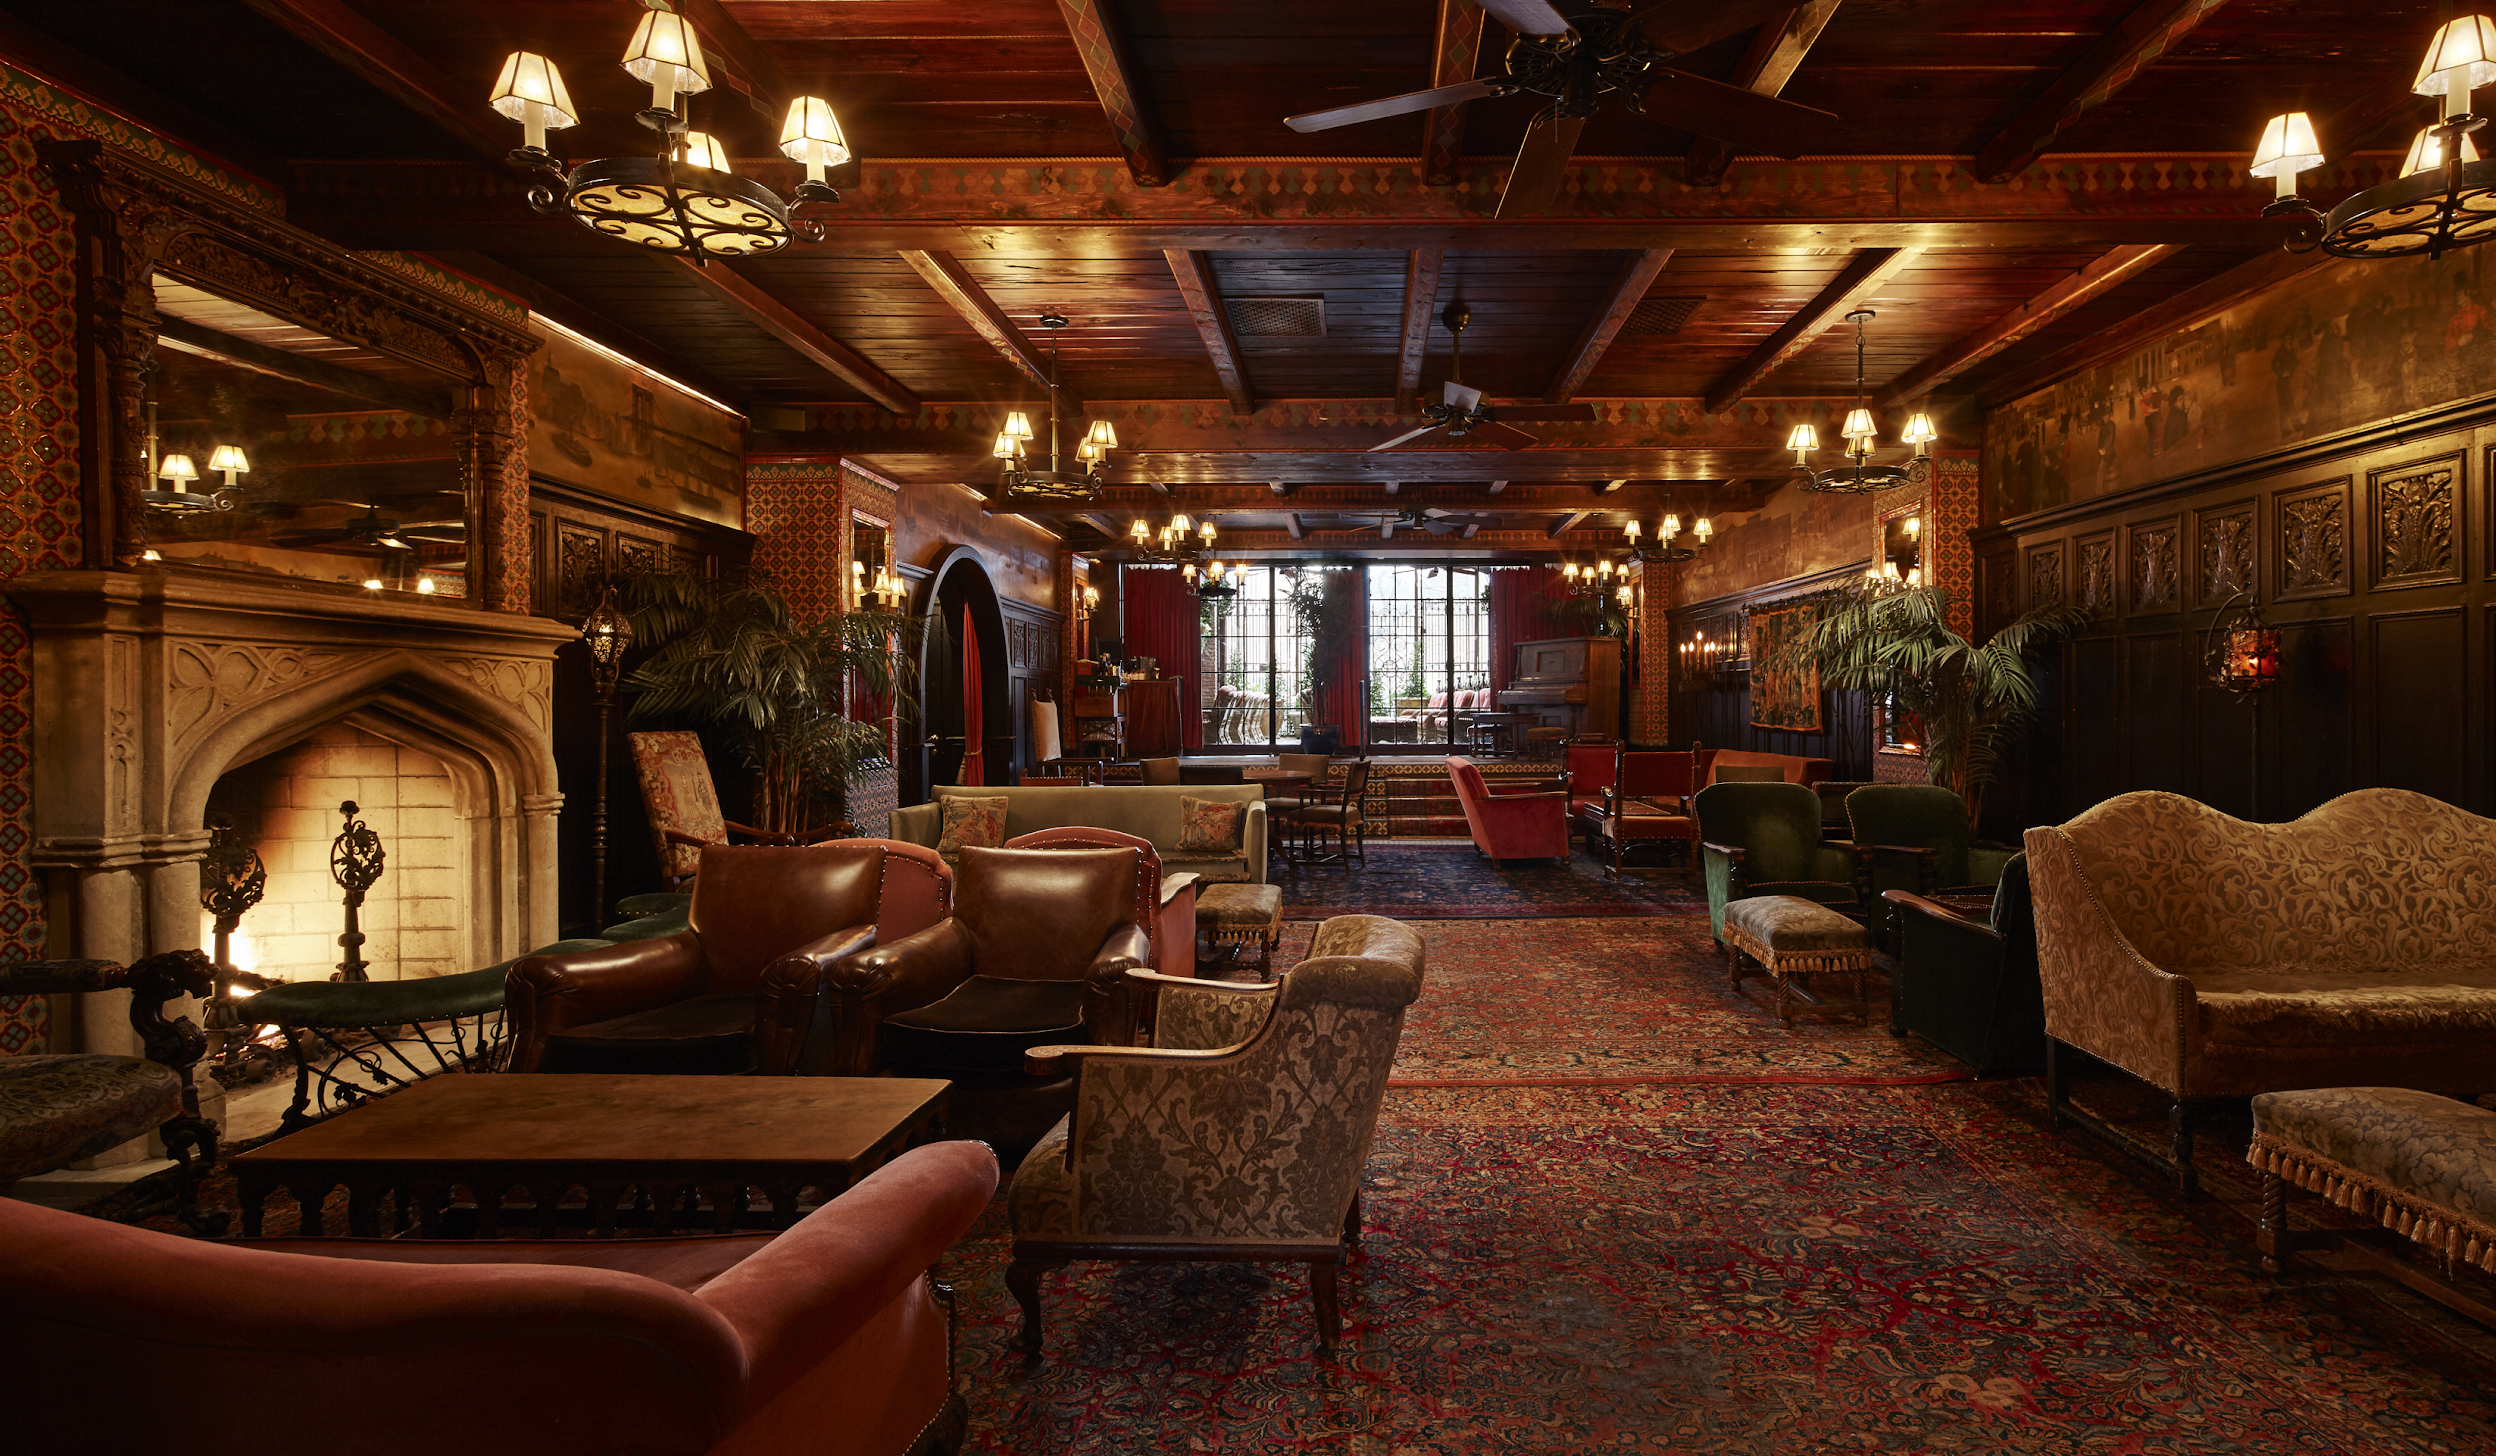 The Bowery Hotel by Anna Schlechter